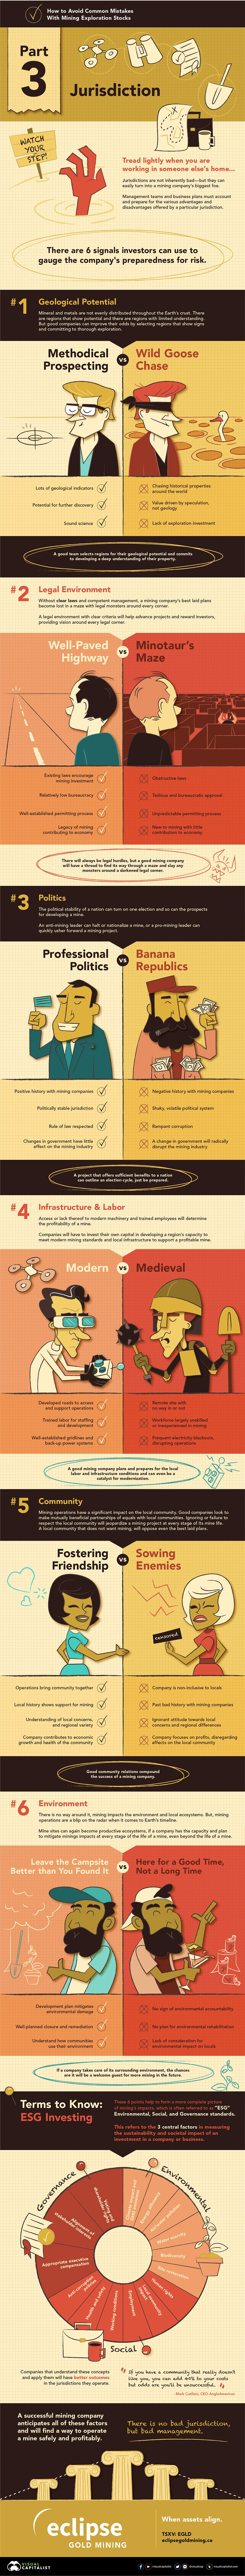 how-to-avoid-common-mistakes-with-mining-stocks-infographic